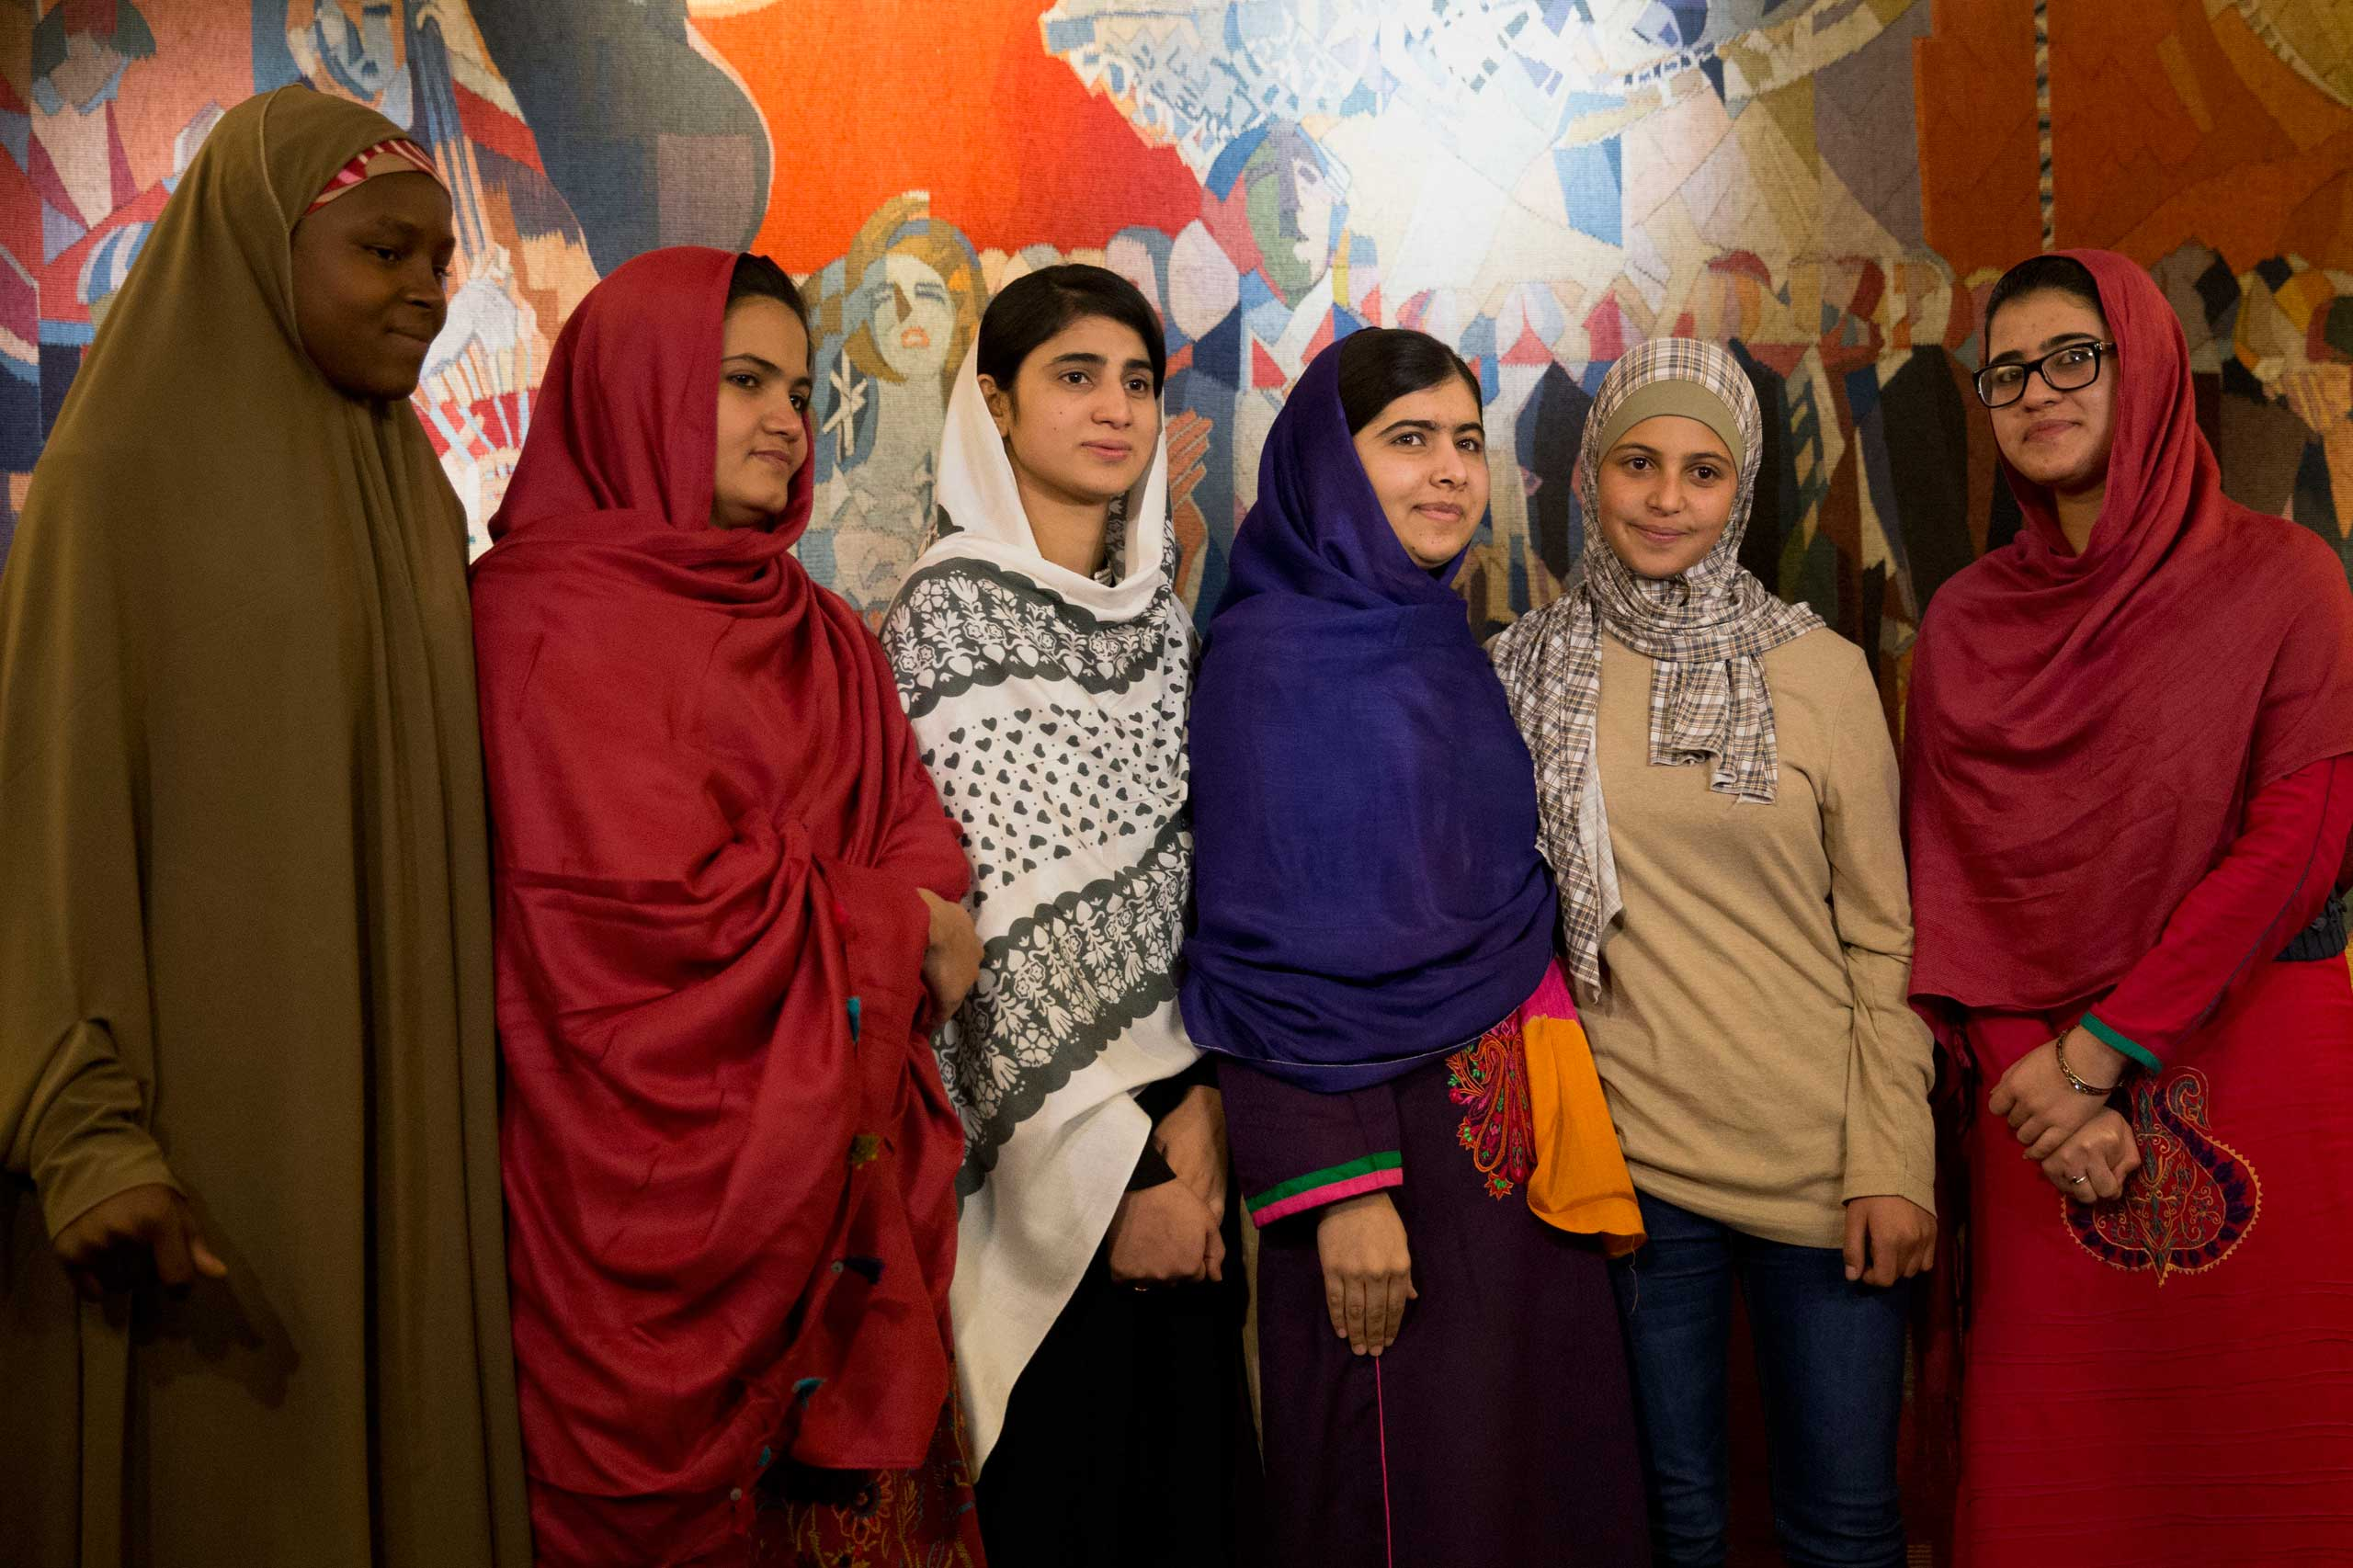 Joint Nobel Peace prize winner Malala Yousafzai, stands with five young women she invited to attend the Nobel Peace Prize ceremony, from left, Nigeria's Amina Yusuf, Pakistan's Kainat Soomro, school friend Shazia Ramzan, Syria's Mezon Almellehan and school friend Kainat Riaz, as they pose for a group photograph before speaking to the media at Malala's hotel in Oslo, Norway, Dec. 9, 2014.